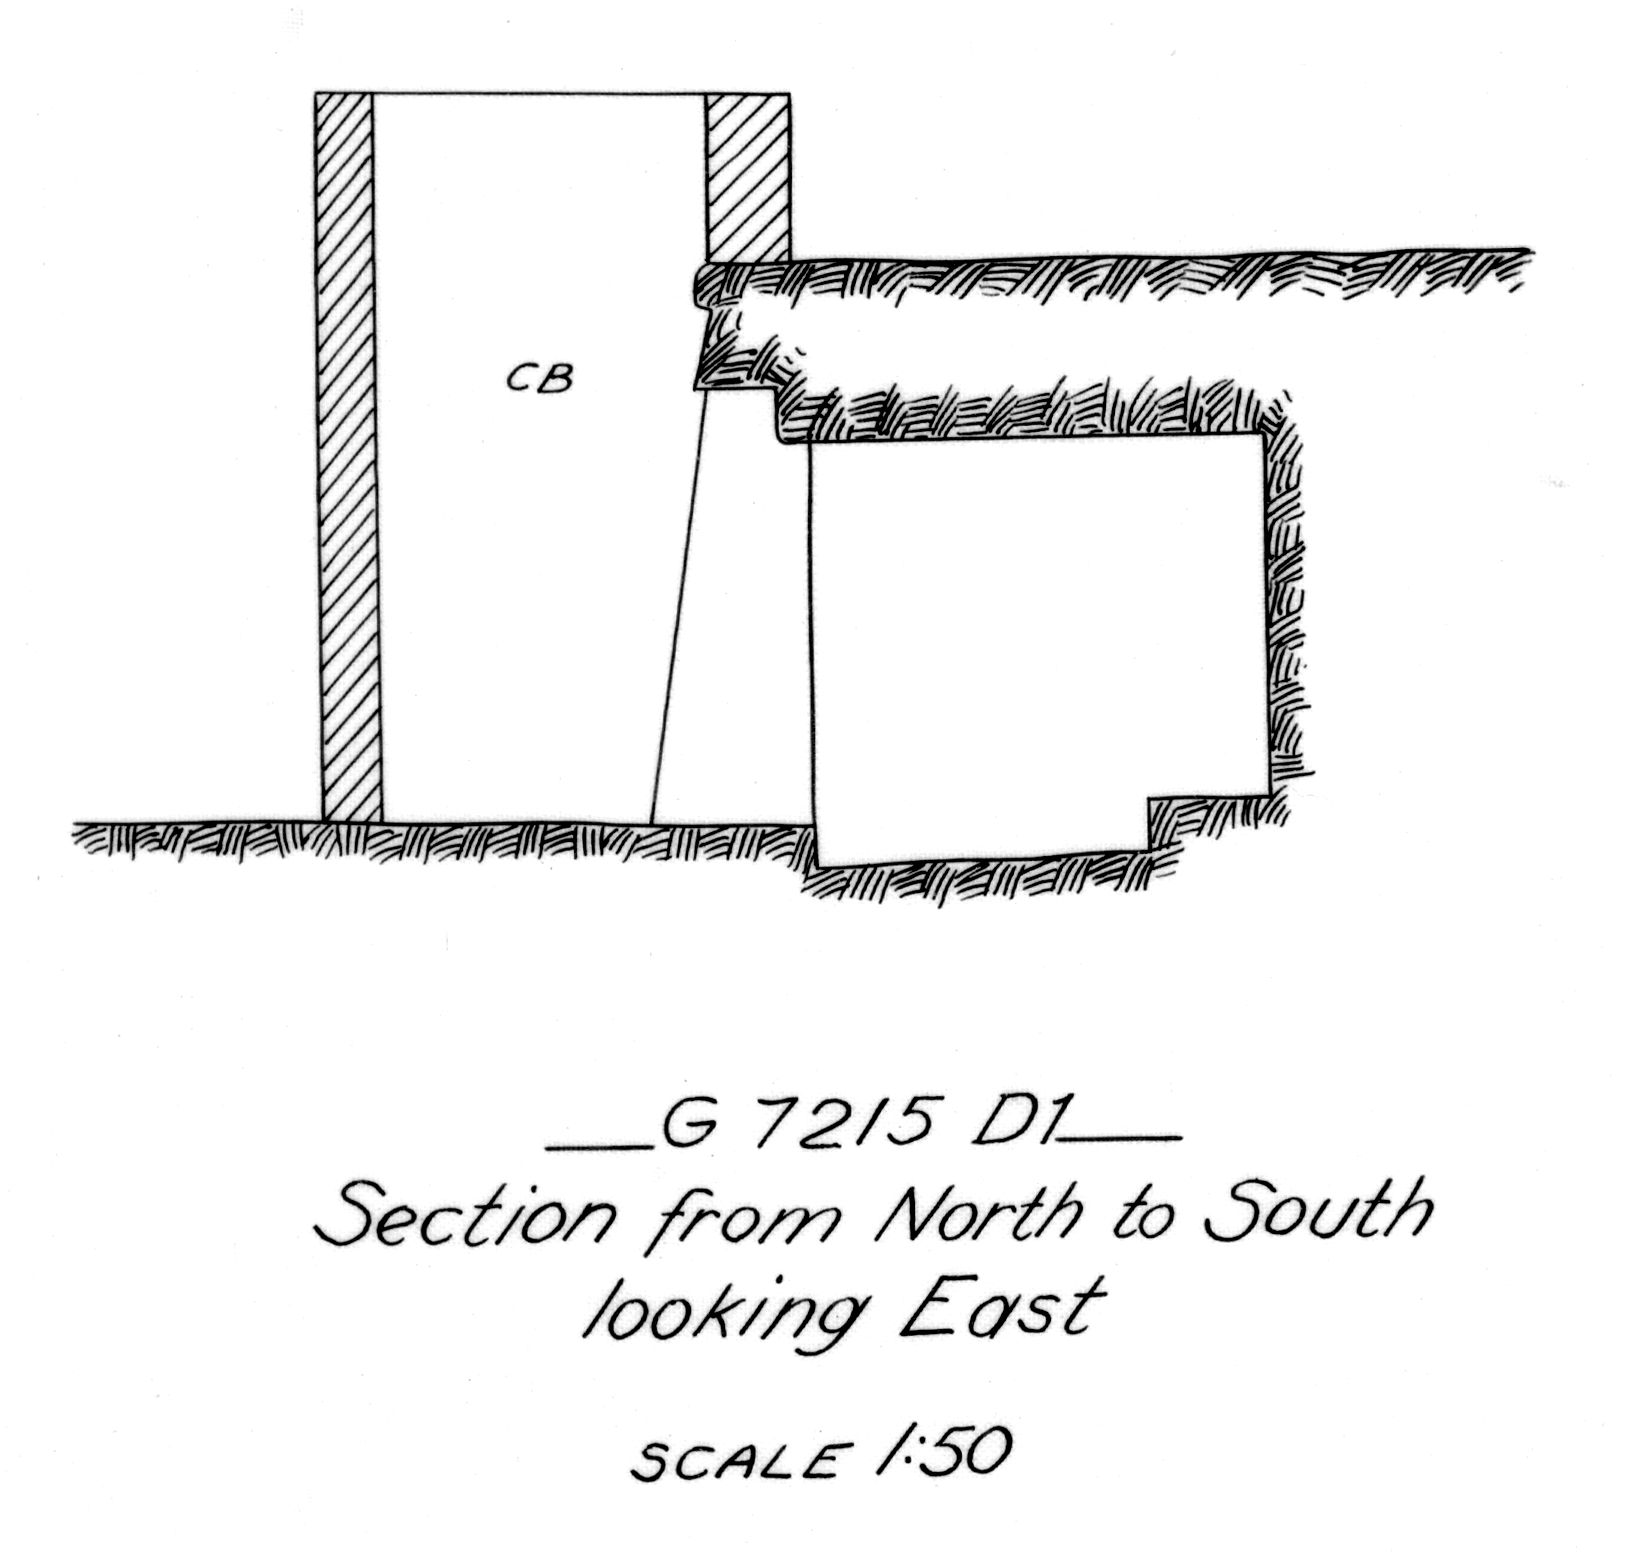 Maps and plans: G 7215, Shaft D1